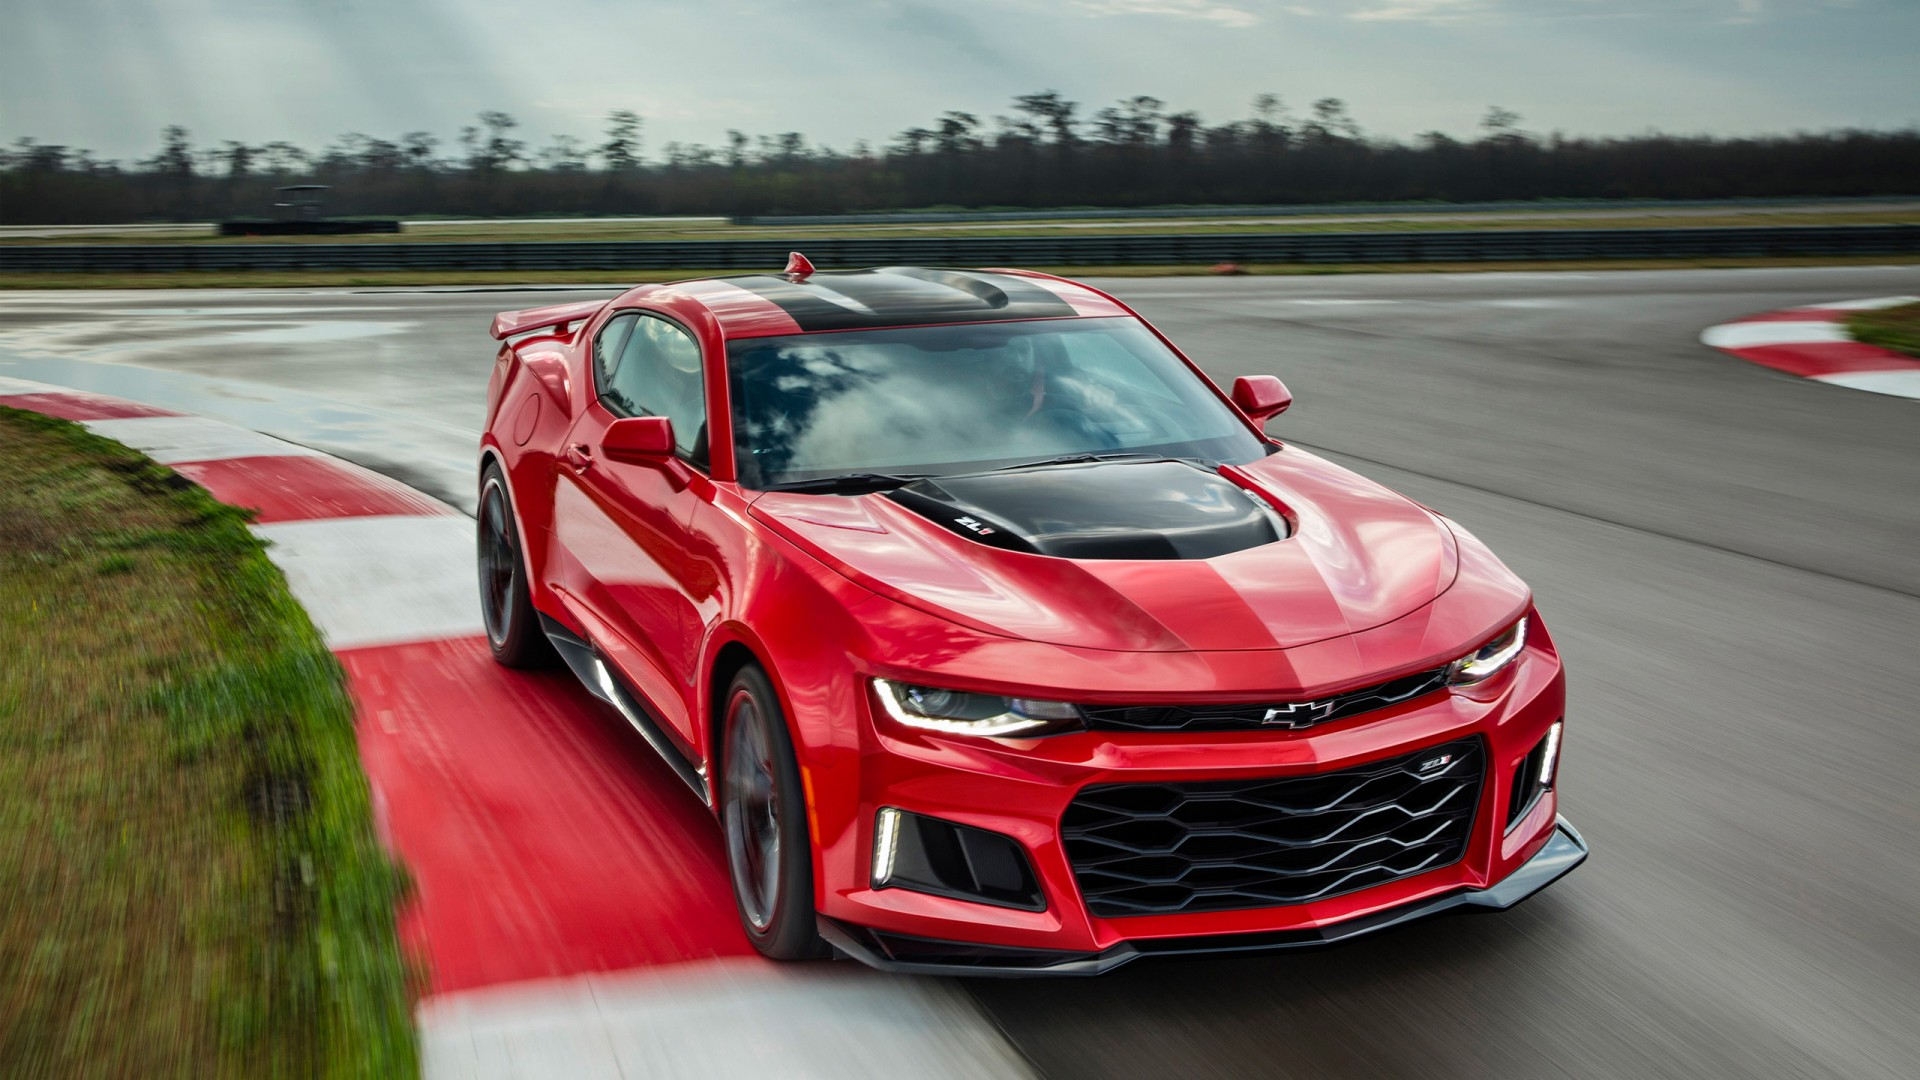 2017 Chevrolet Camaro ZL1 Wallpaper | HD Car Wallpapers ...